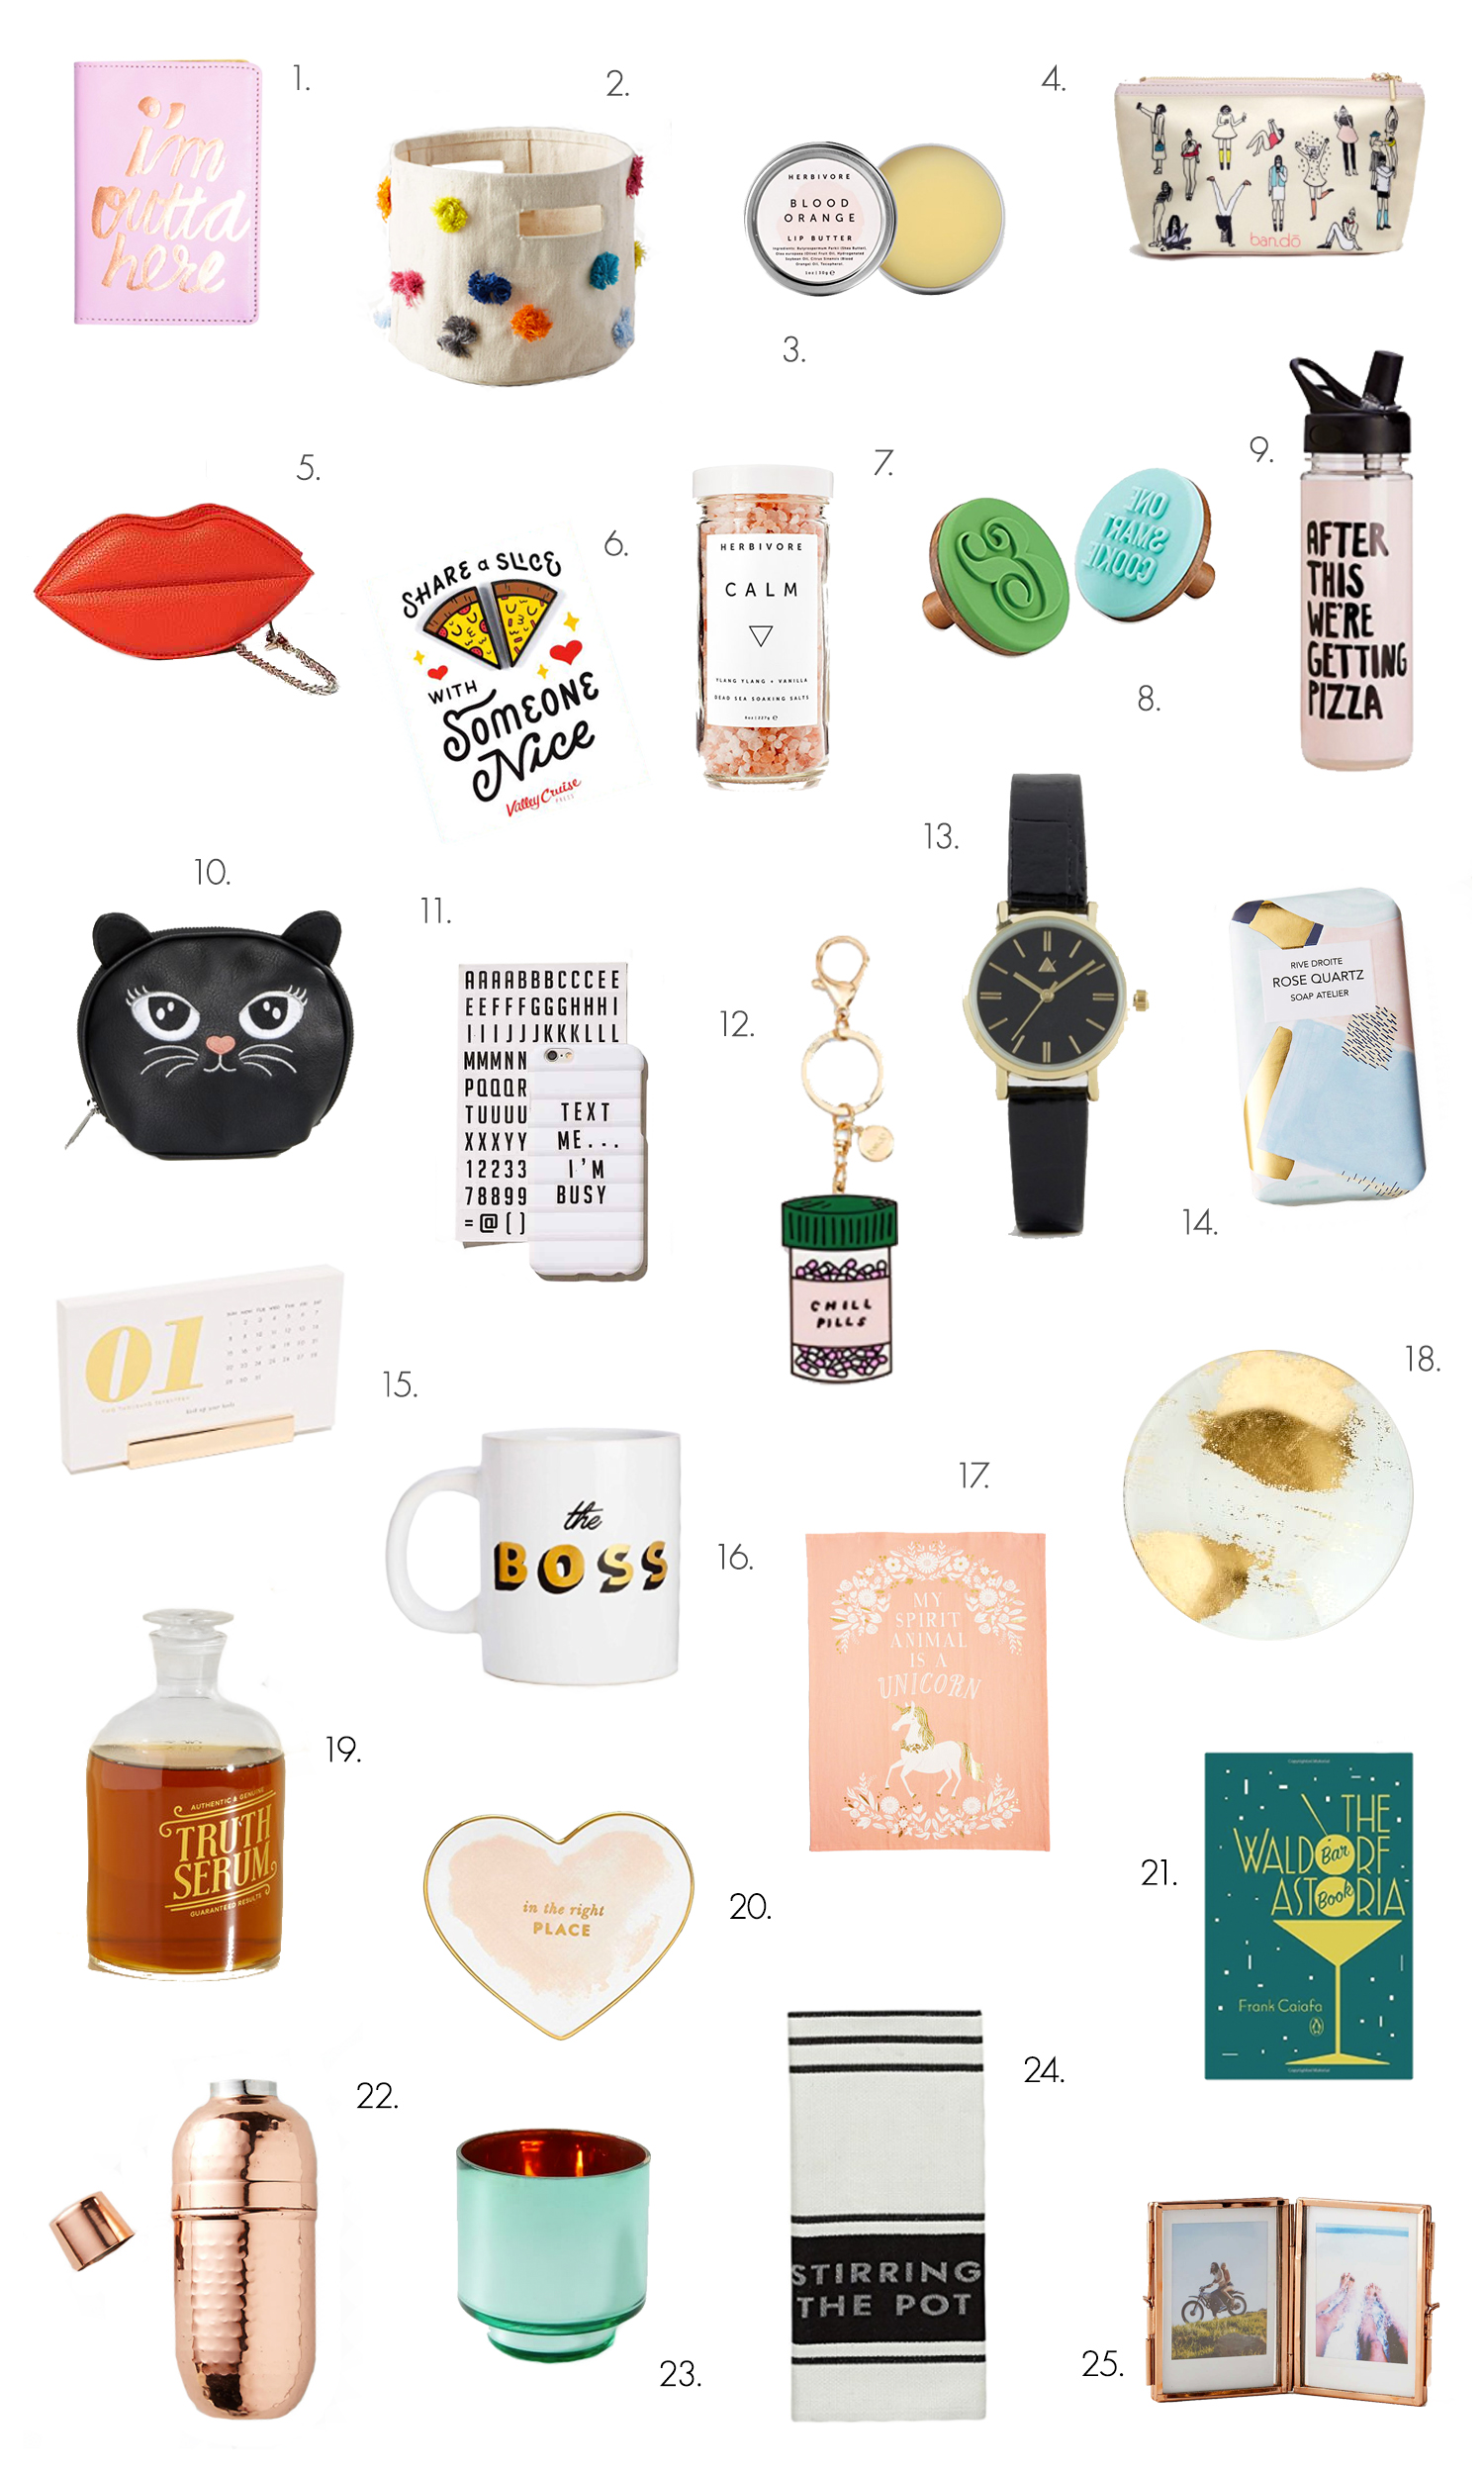 25 awesome gifts under $25! (click through for more!)